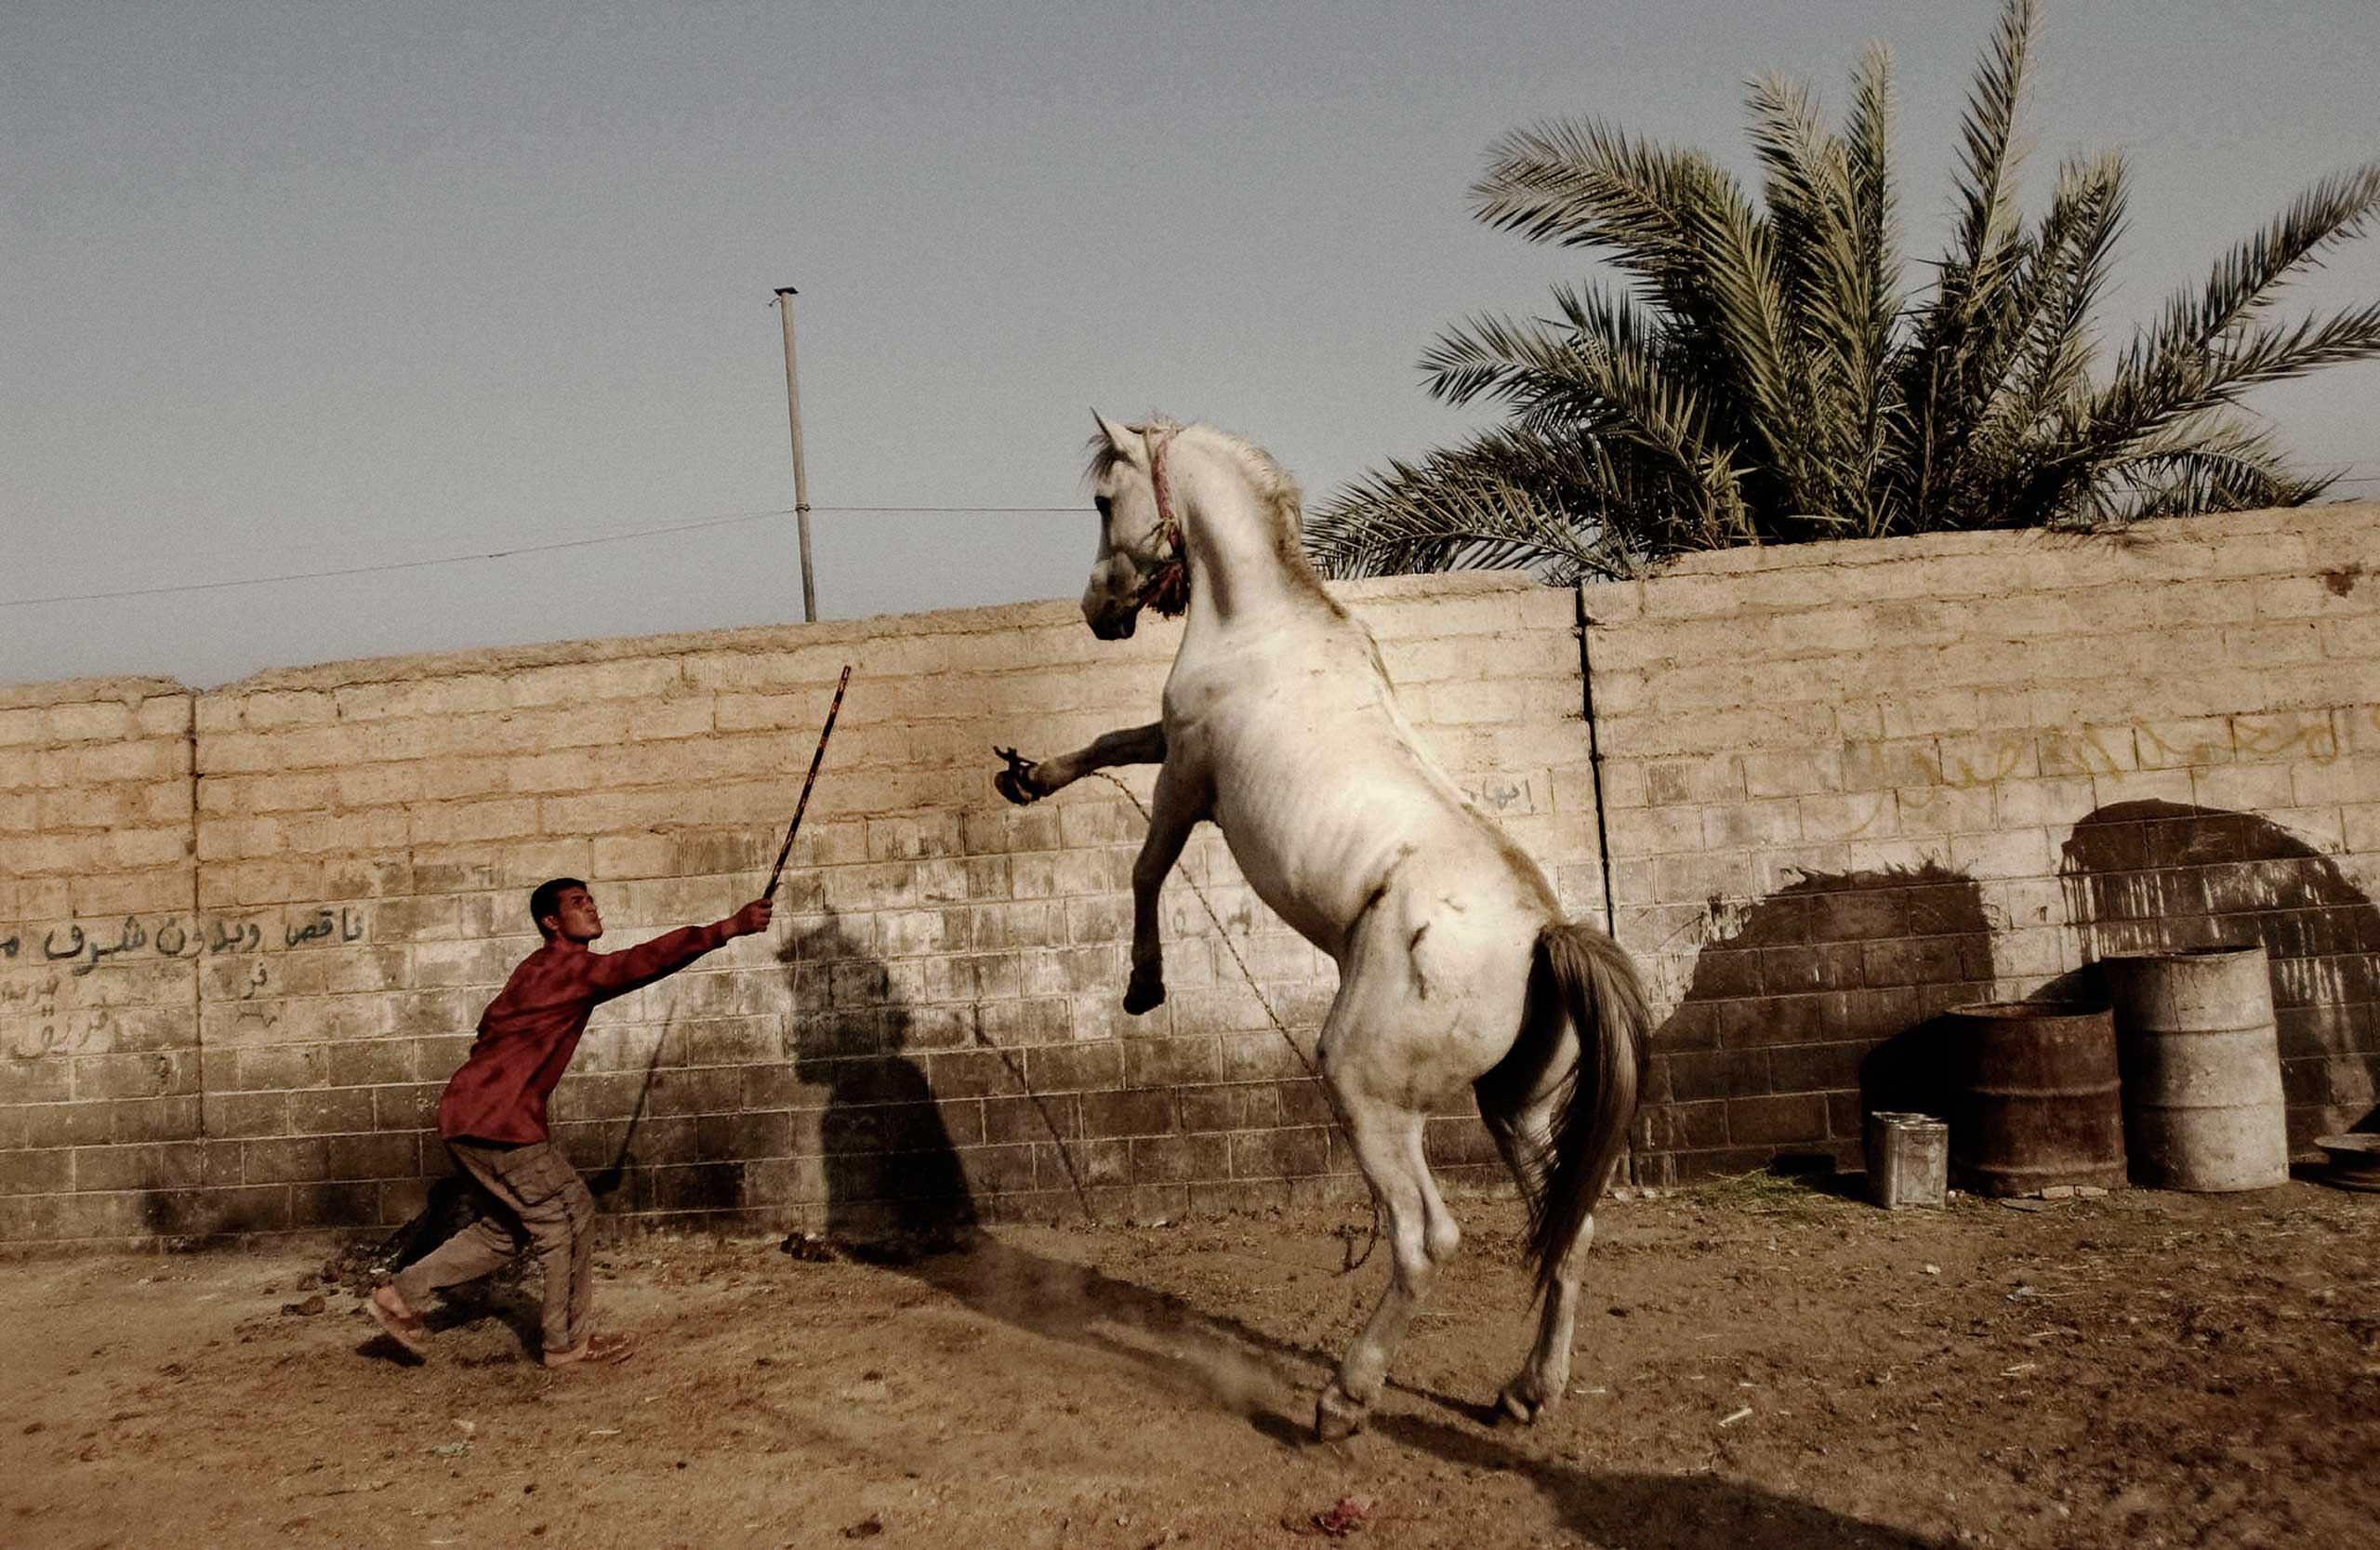 <b>Moises Saman, July 2004                                   </b>                                   I took this photograph a year after the fall of Saddam Hussein. I was driving around the sprawling slum of Sadr City, formerly known as Saddam City, when in a back alley I noticed a young man trying to tame this majestic white horse. The scene was at once mesmerizing and jarring because the animal seemed so out of place. Looking back at this memory, the photo represents to me the opulence of Saddam's reign, and the struggles of the Iraqi people to regain a sense of control with what remained from the former regime.